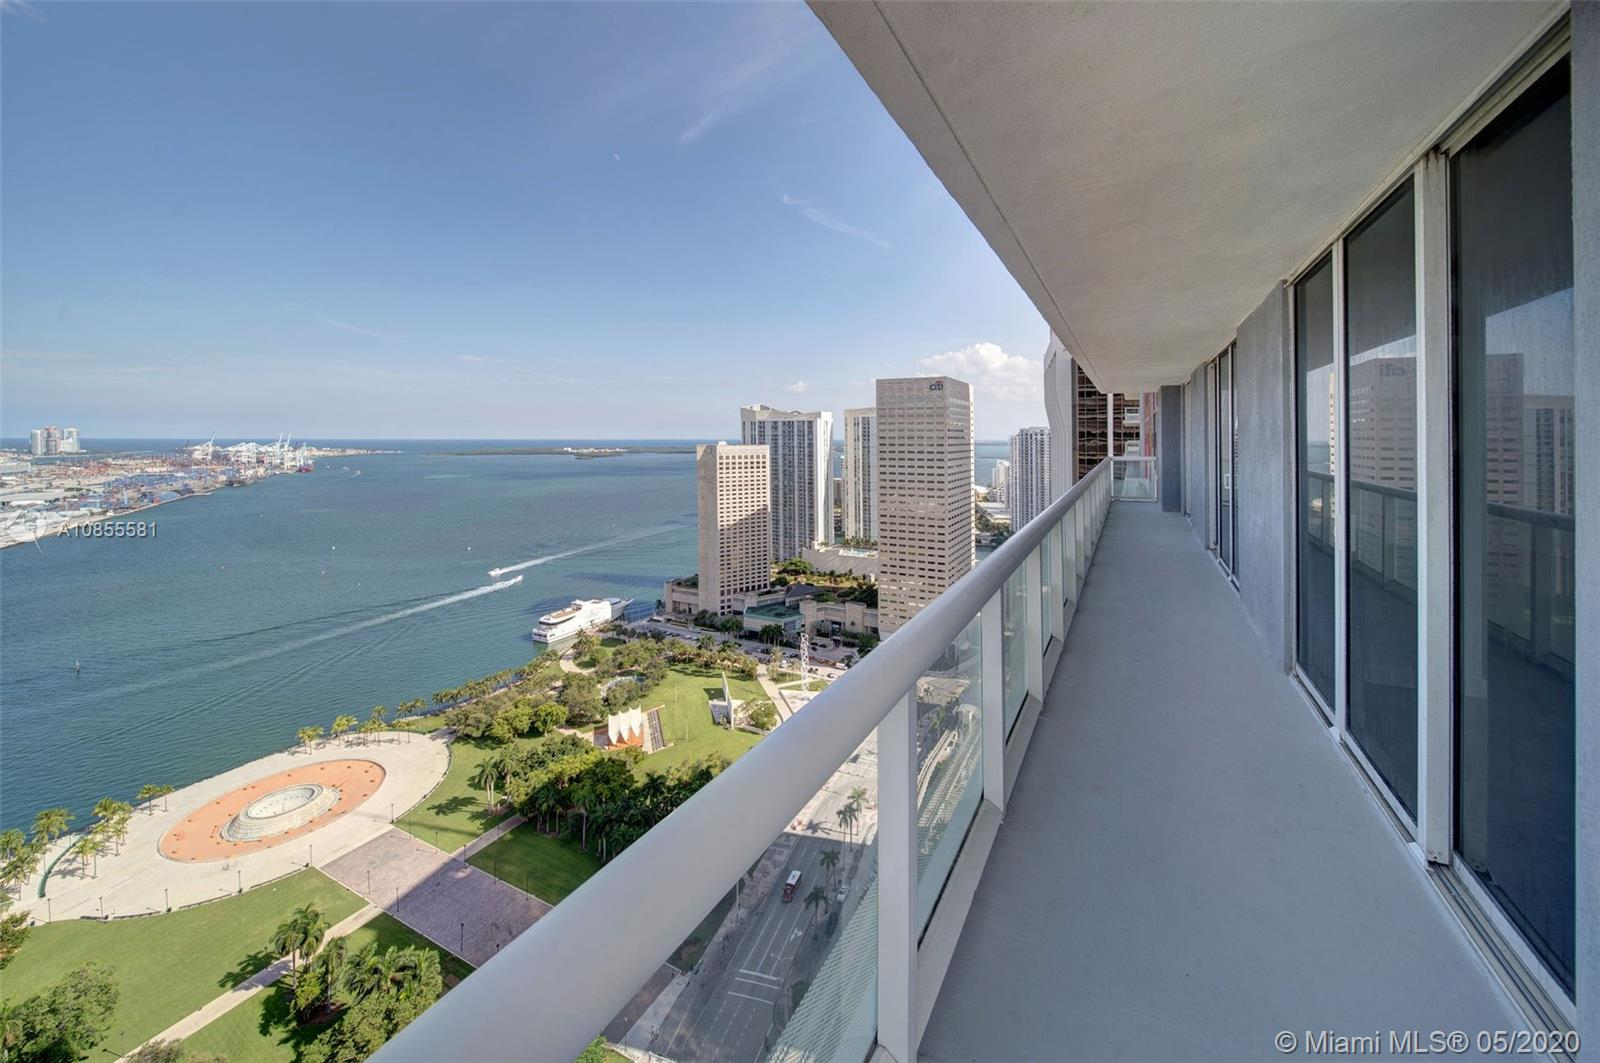 Live in the Heart of the Magic City!! Located right in the middle of Miami's exciting nightlife, this building offers the perfect place to call home. Enjoy stunning sunrise views of the crystal South Florida waters from the oversized balcony in the sky.  Corner unit floor plan design proves an ideal layout for comfortable, ample living spaces in this modern, updated 3/2.  Natural light beams throughout the unit making every angle the perfect view.  Premier building with resort style amenities including a spectacular pool and patio area, full service professional give including yoga and pilates!  A stone's throw from amazing restaurants, American Arena, Opera House, Beaches and the airport.